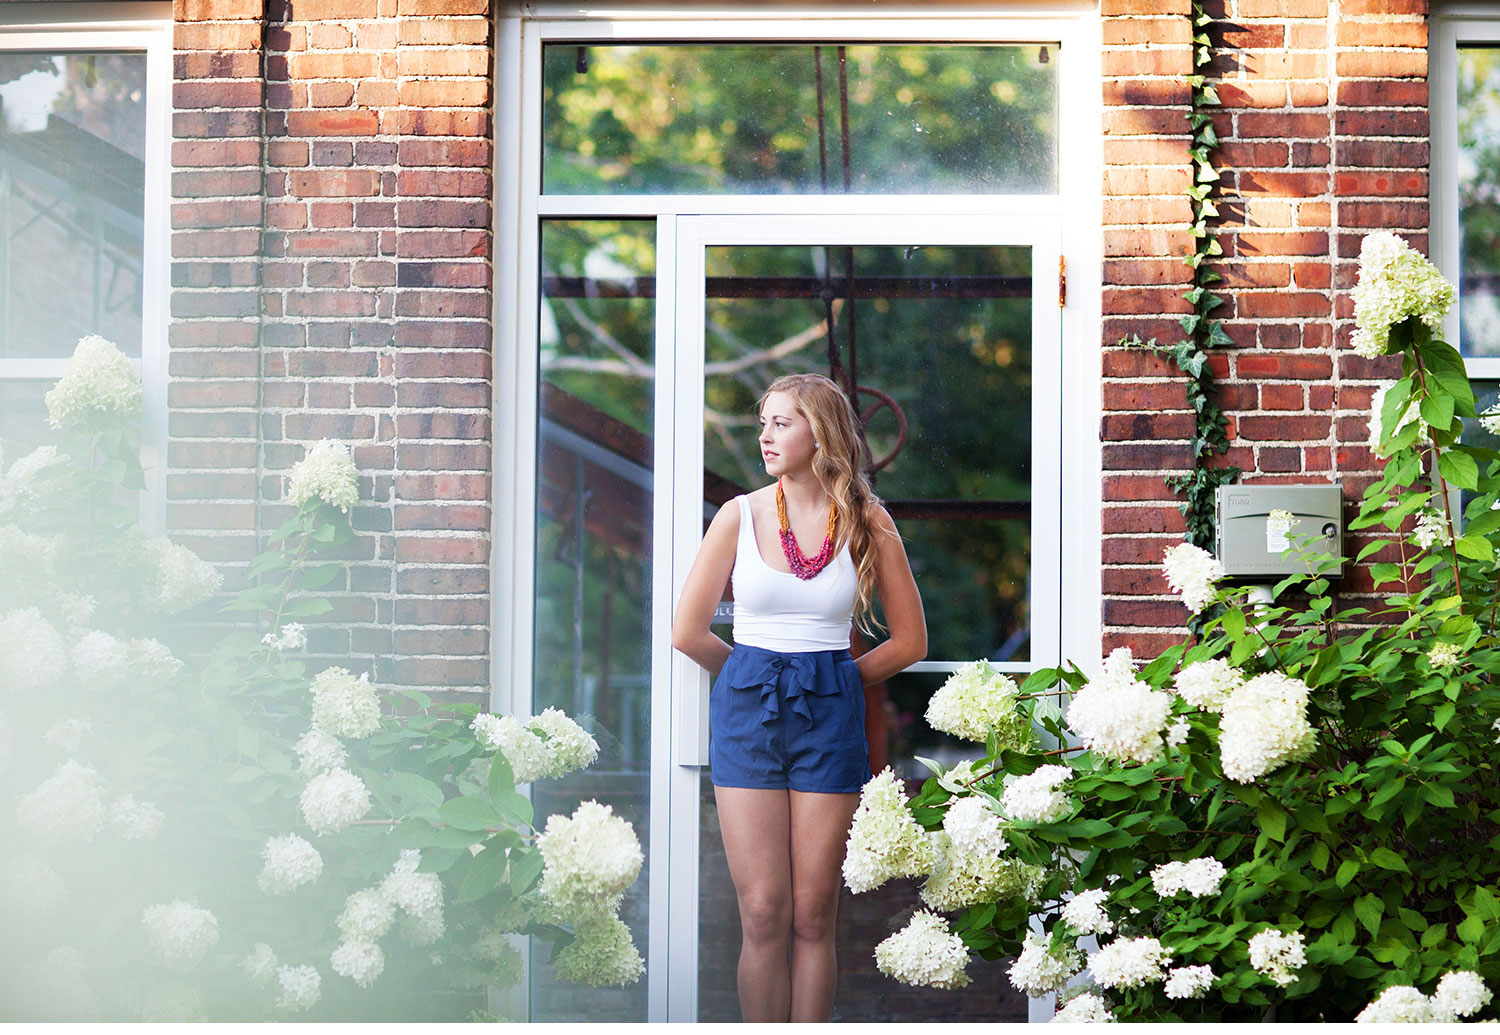 You've Got Flair | Clare's Garden Summer Senior Session, Clare Against Hydrangeas & Greenhouse, Senior  2015